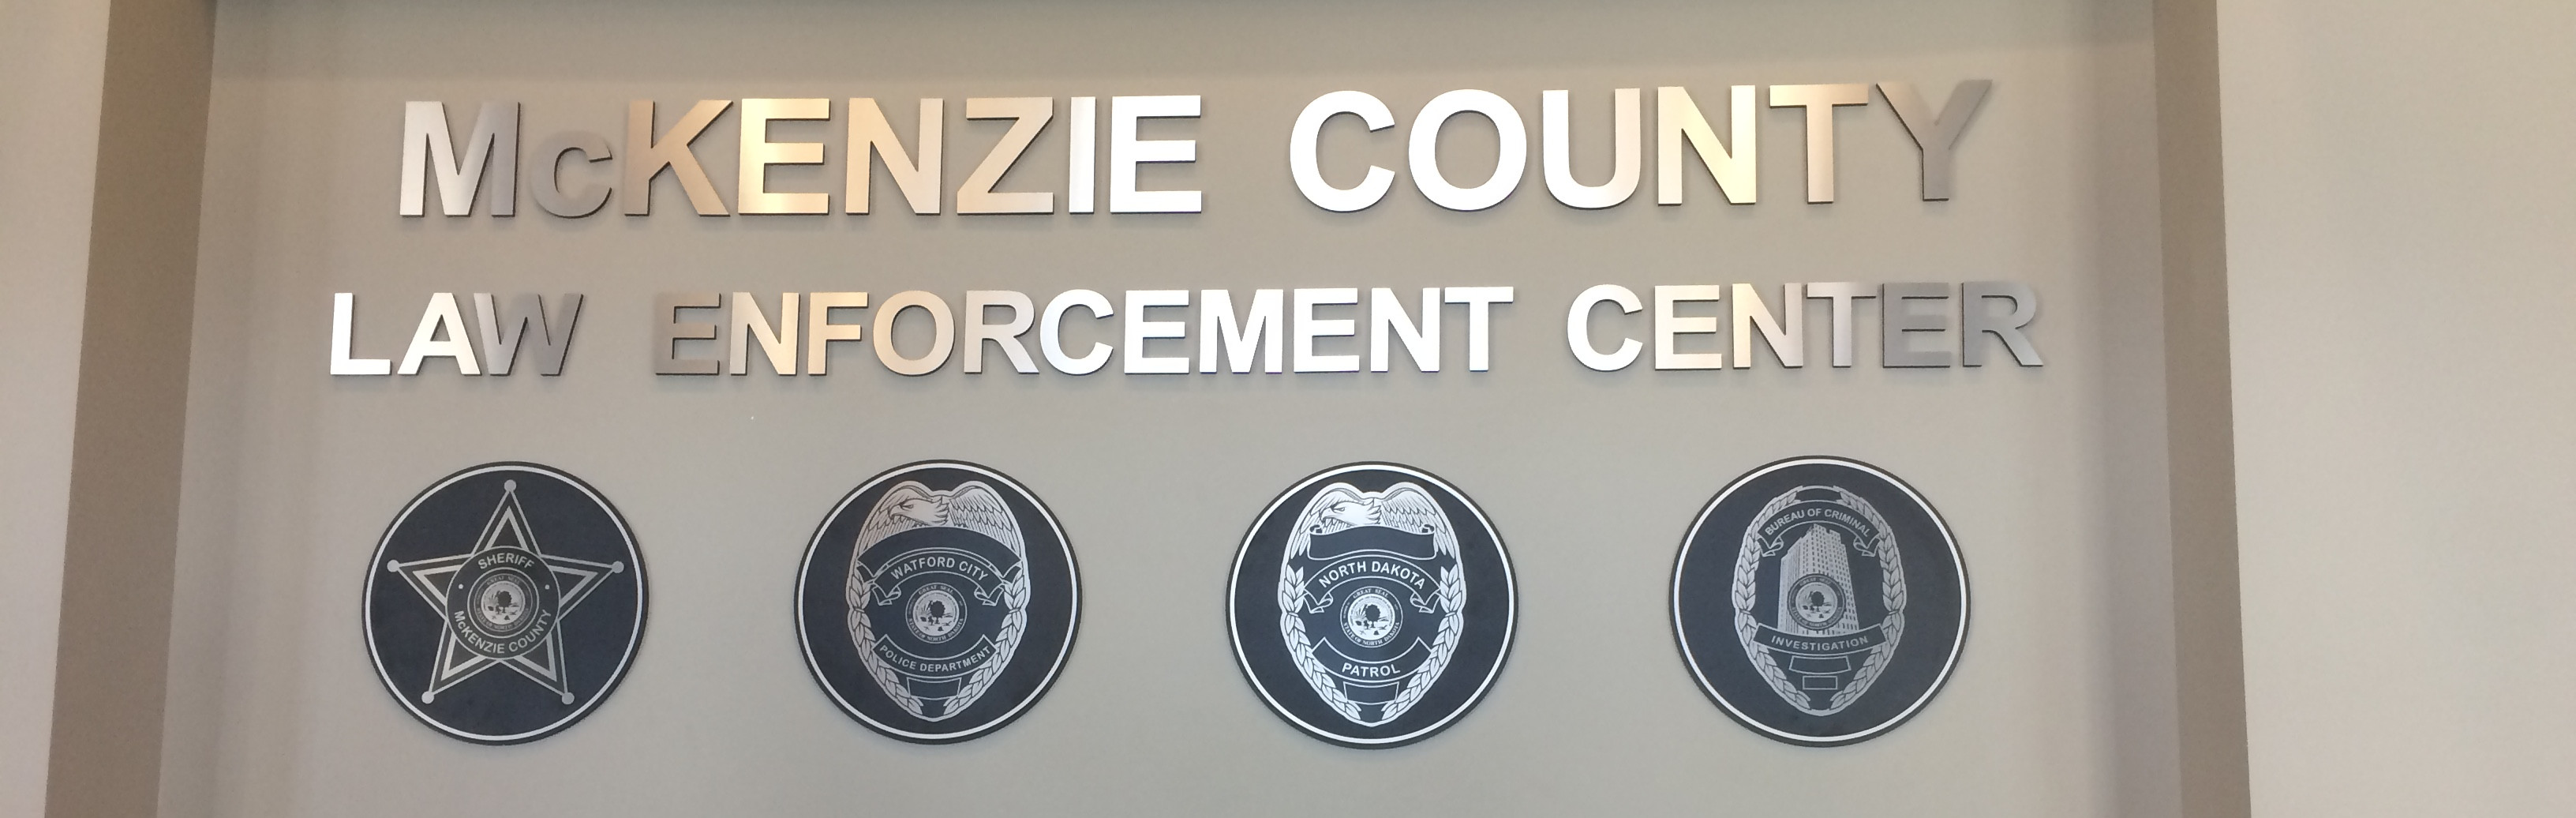 McKenzie County Law Enforcement